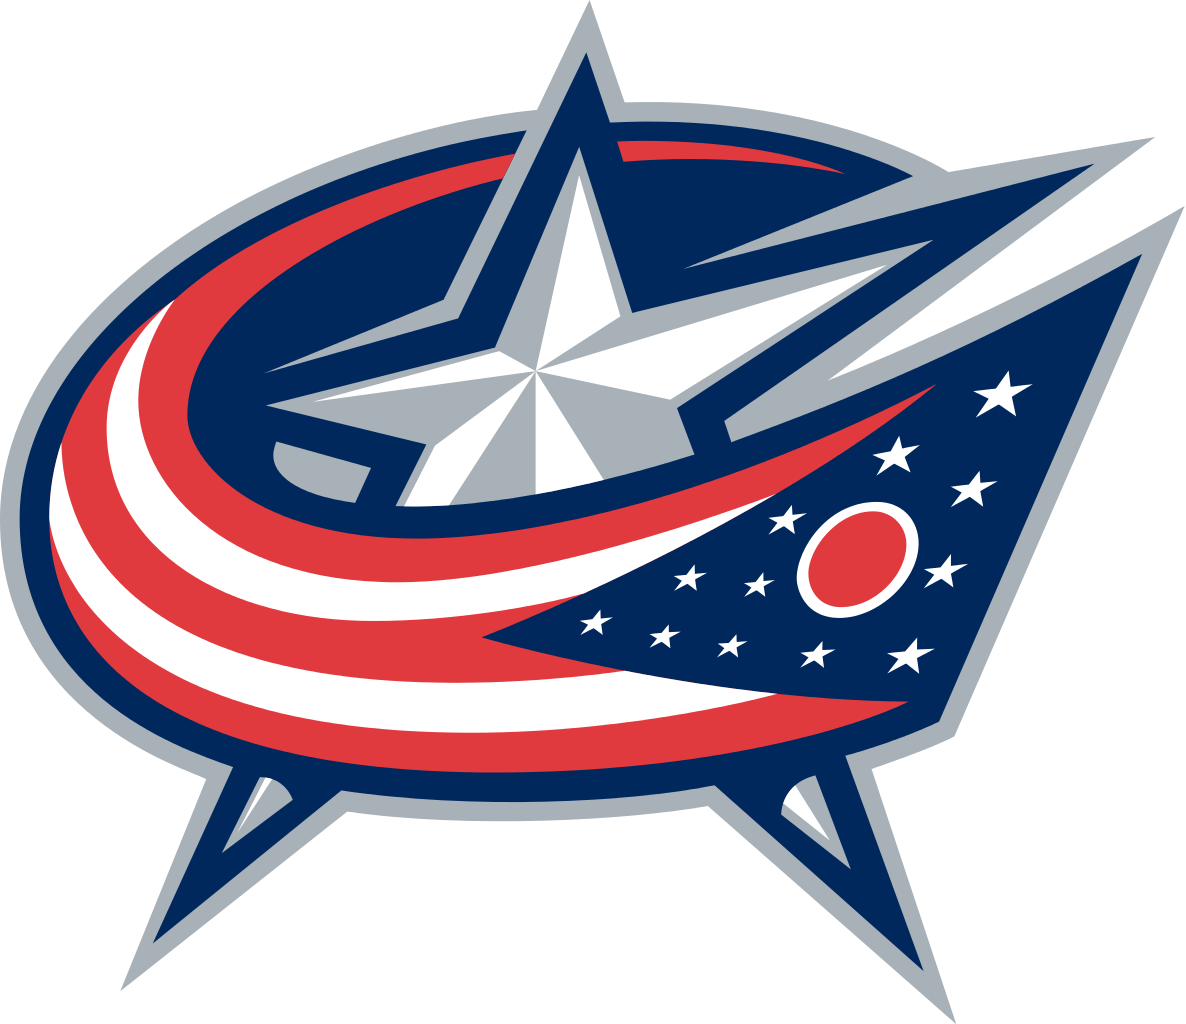 Blue Jackets Fundraiser Night | The American Foundry Society Ohio ...